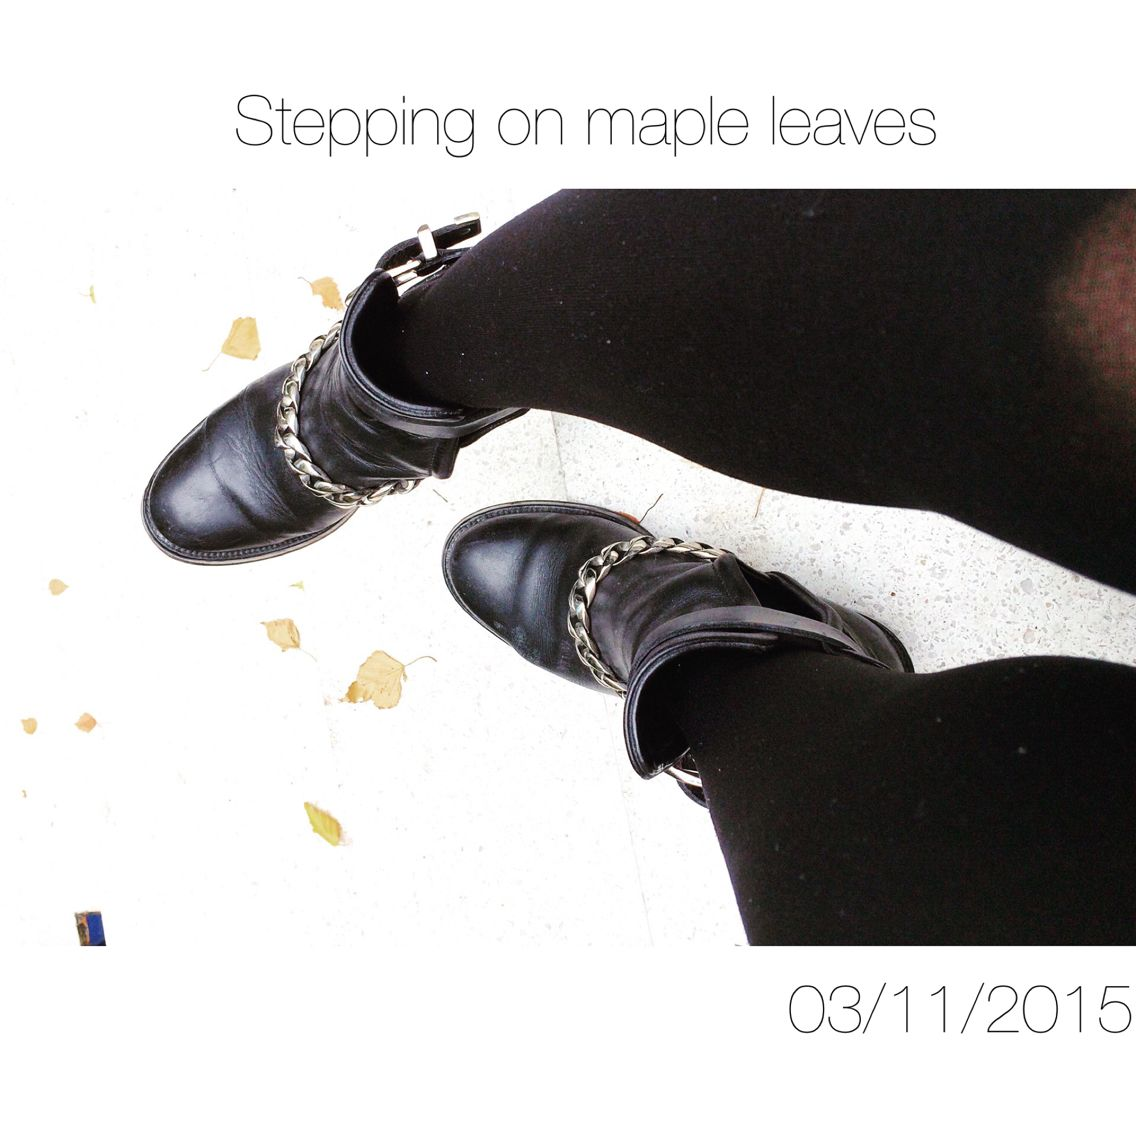 Stepping on maple leaves